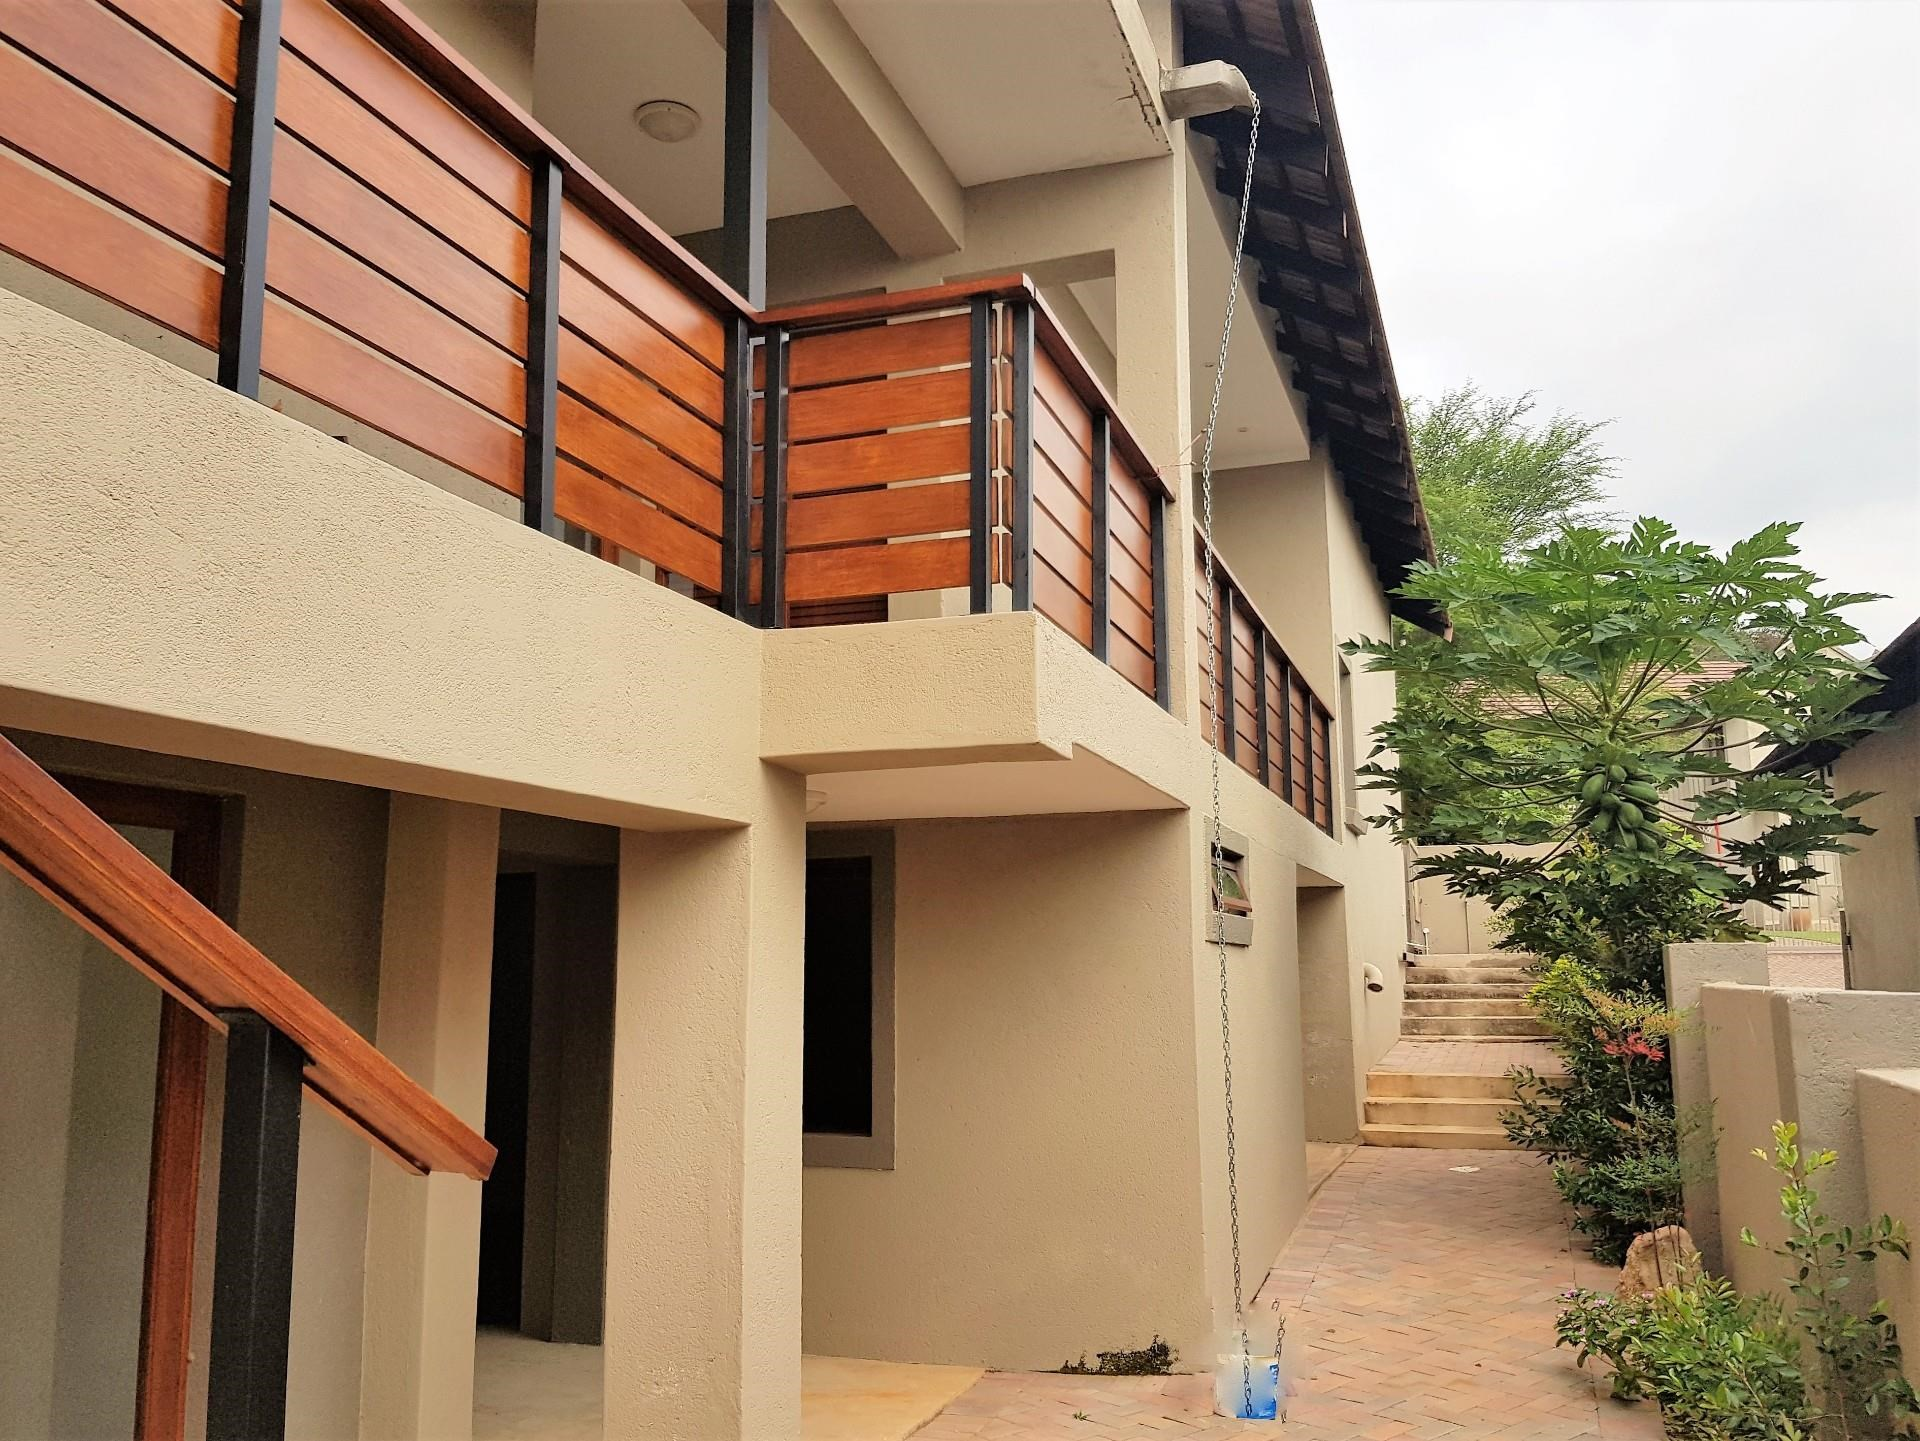 7 Bedroom House for Sale in Sonheuwel